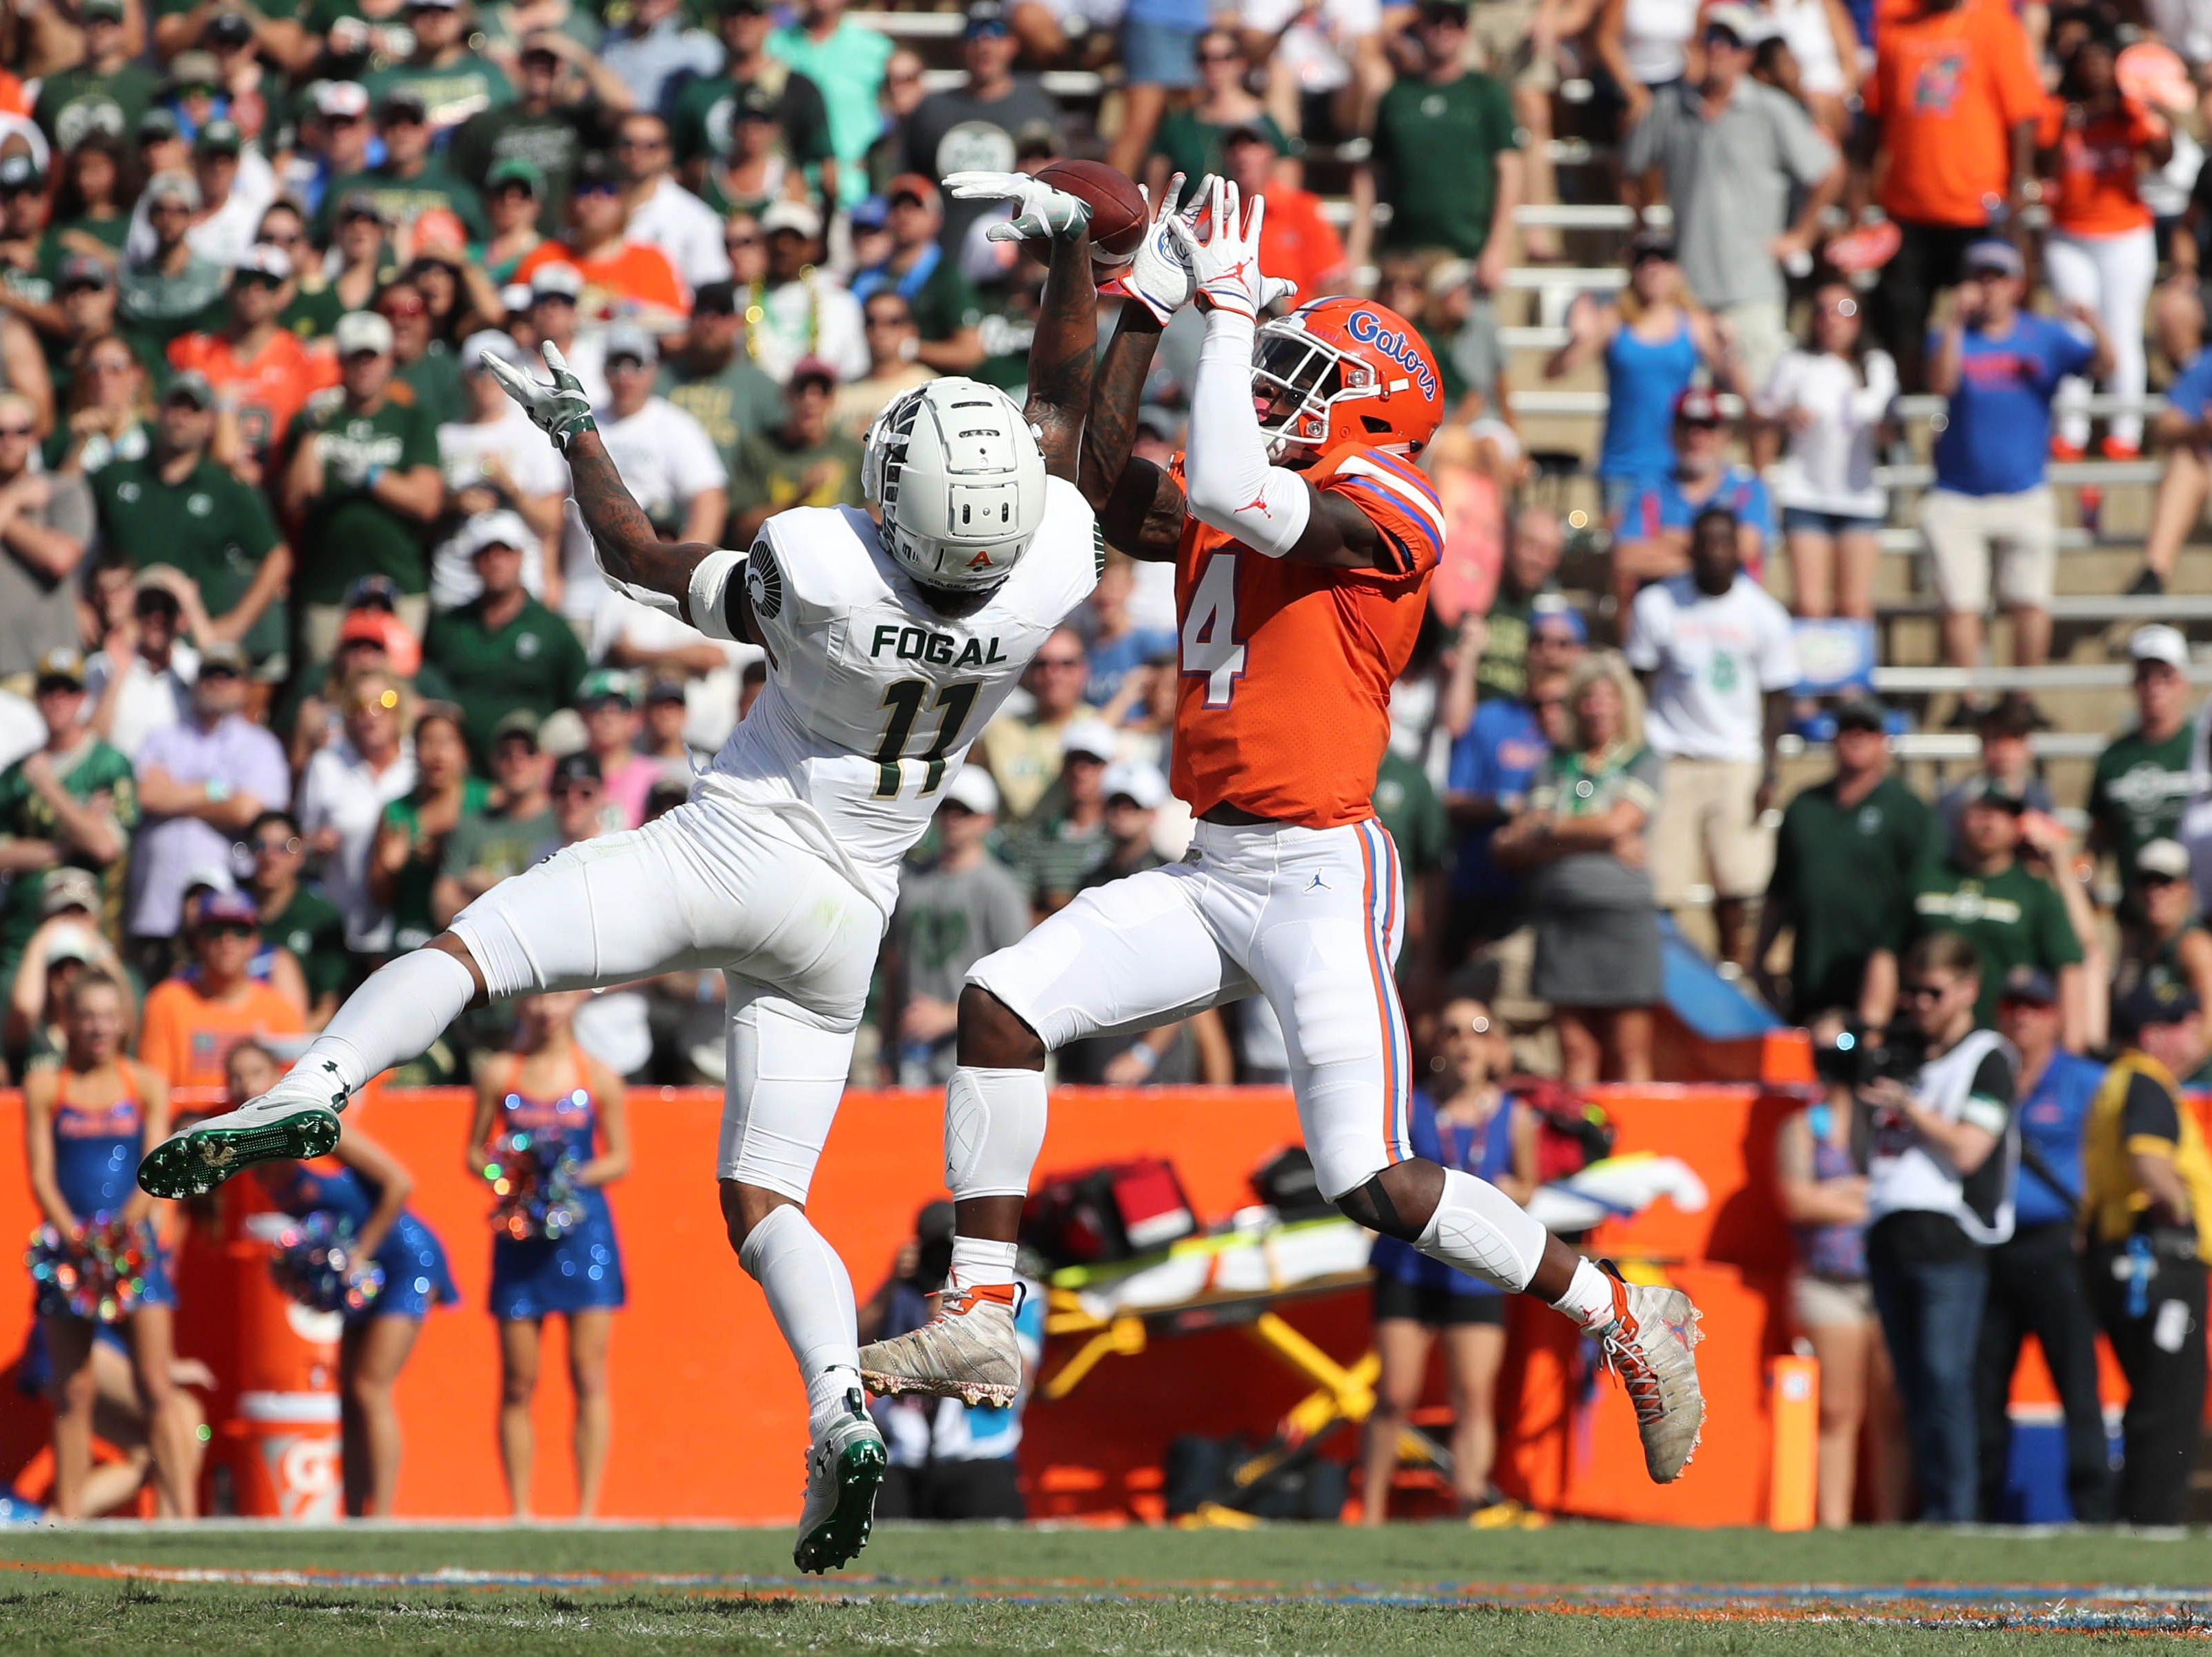 Colorado State Rams safety Jordan Fogal (11) defends against Florida Gators running back Kadarius Toney (4) during the first quarter at Ben Hill Griffin Stadium.